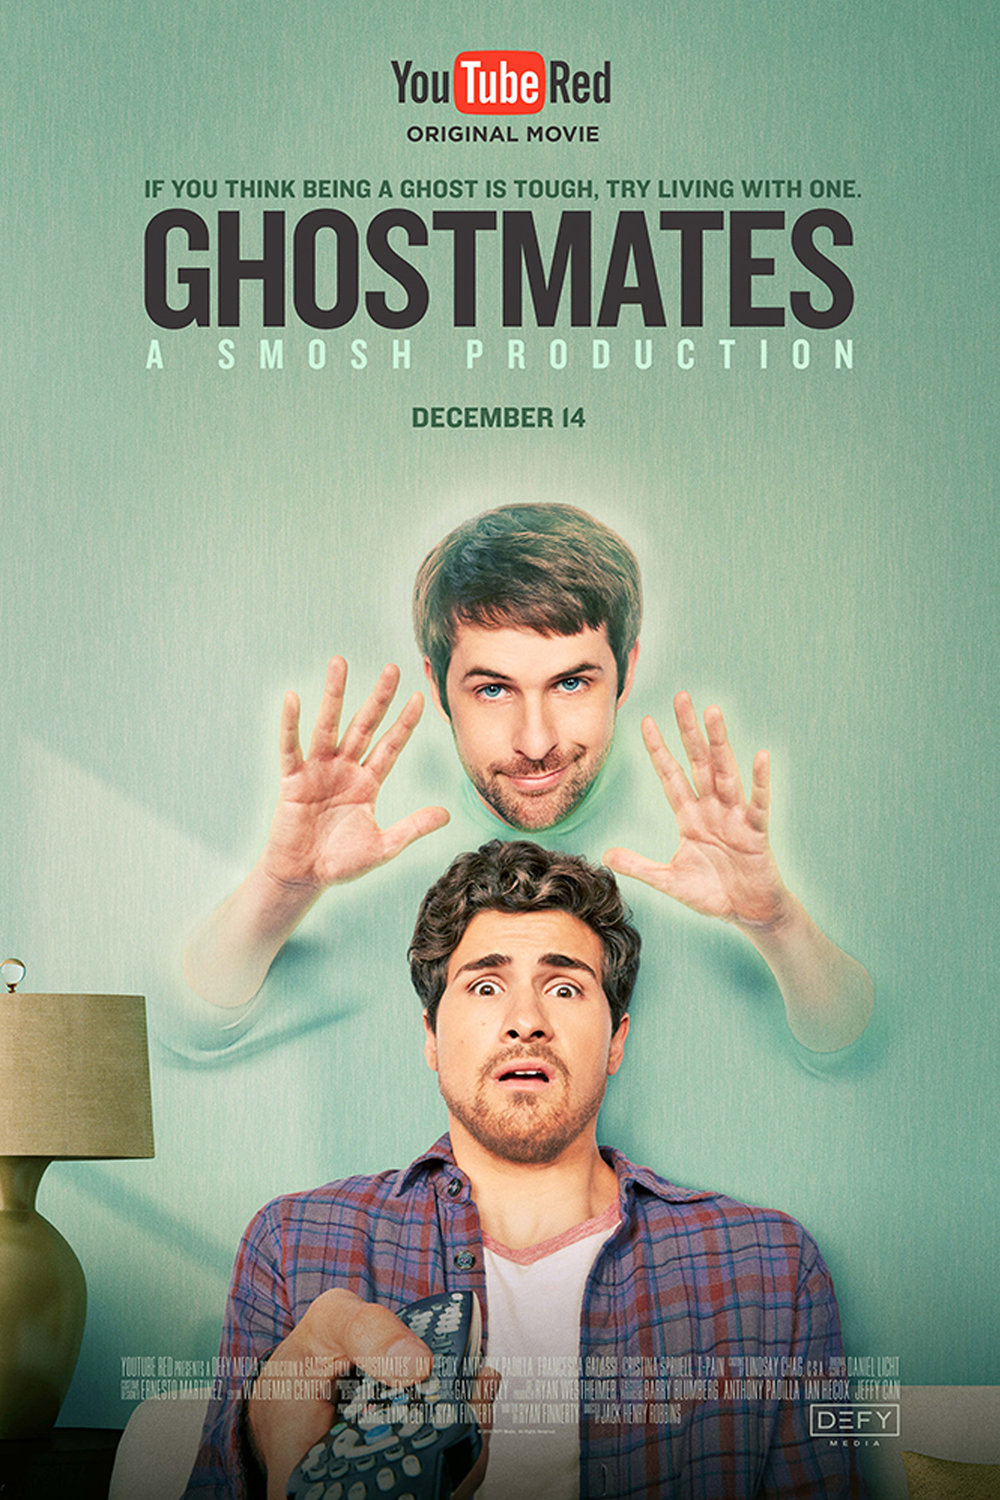 GHOSTMATES   Feature Film, Comedy  Studio/Network - Youtube Red/Google  Director - Jack Henry Robbins  Editor - Waldemar Centeno  *2017 Streamys - Nominated Best Feature Film